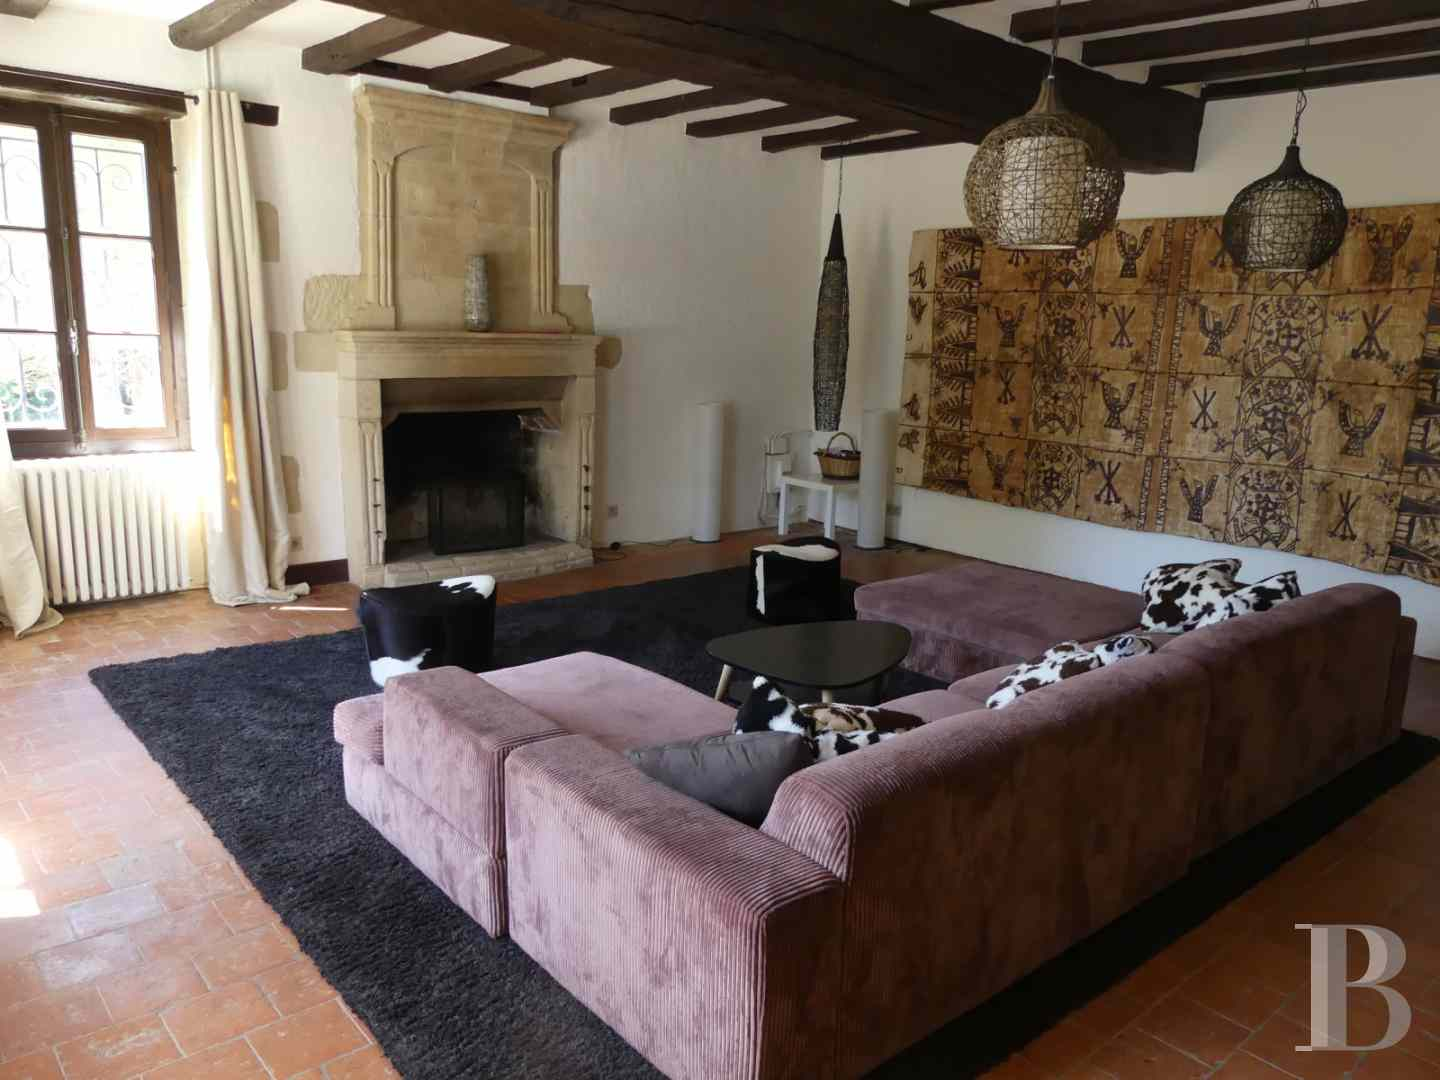 property for sale France poitou charentes residences farms - 2 zoom